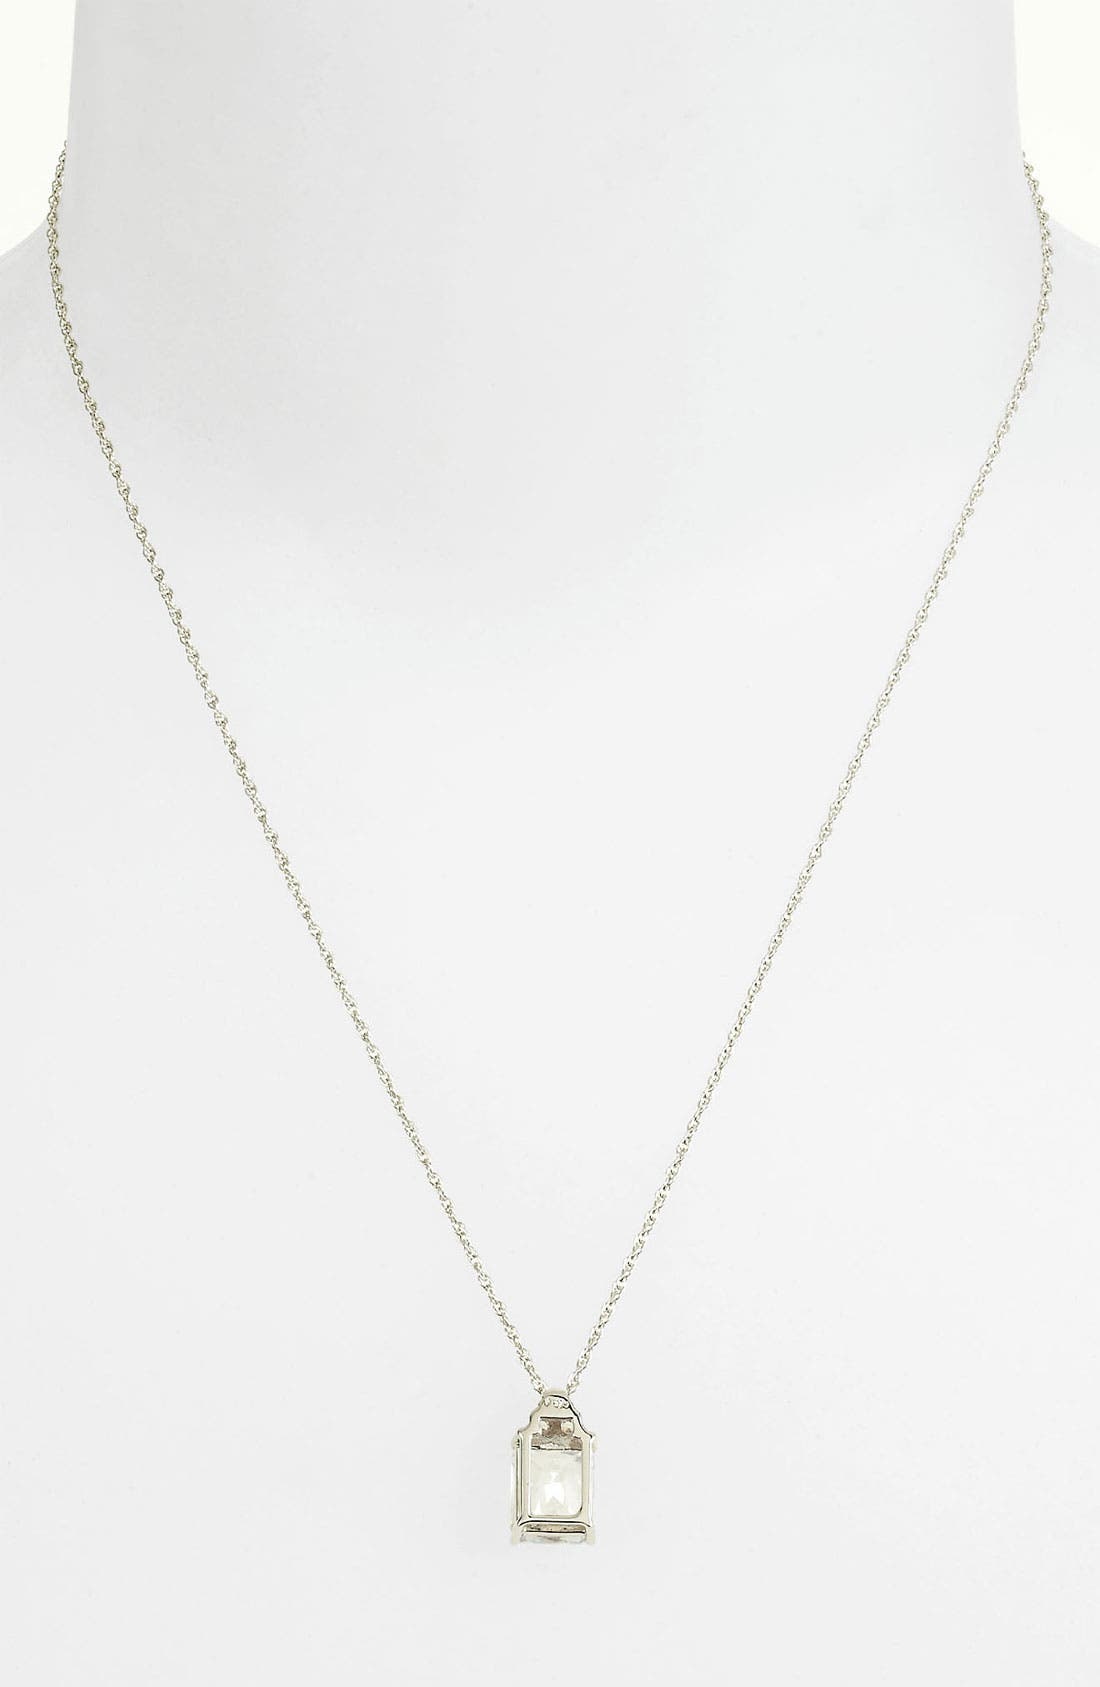 Main Image - Nordstrom Pendant Necklace